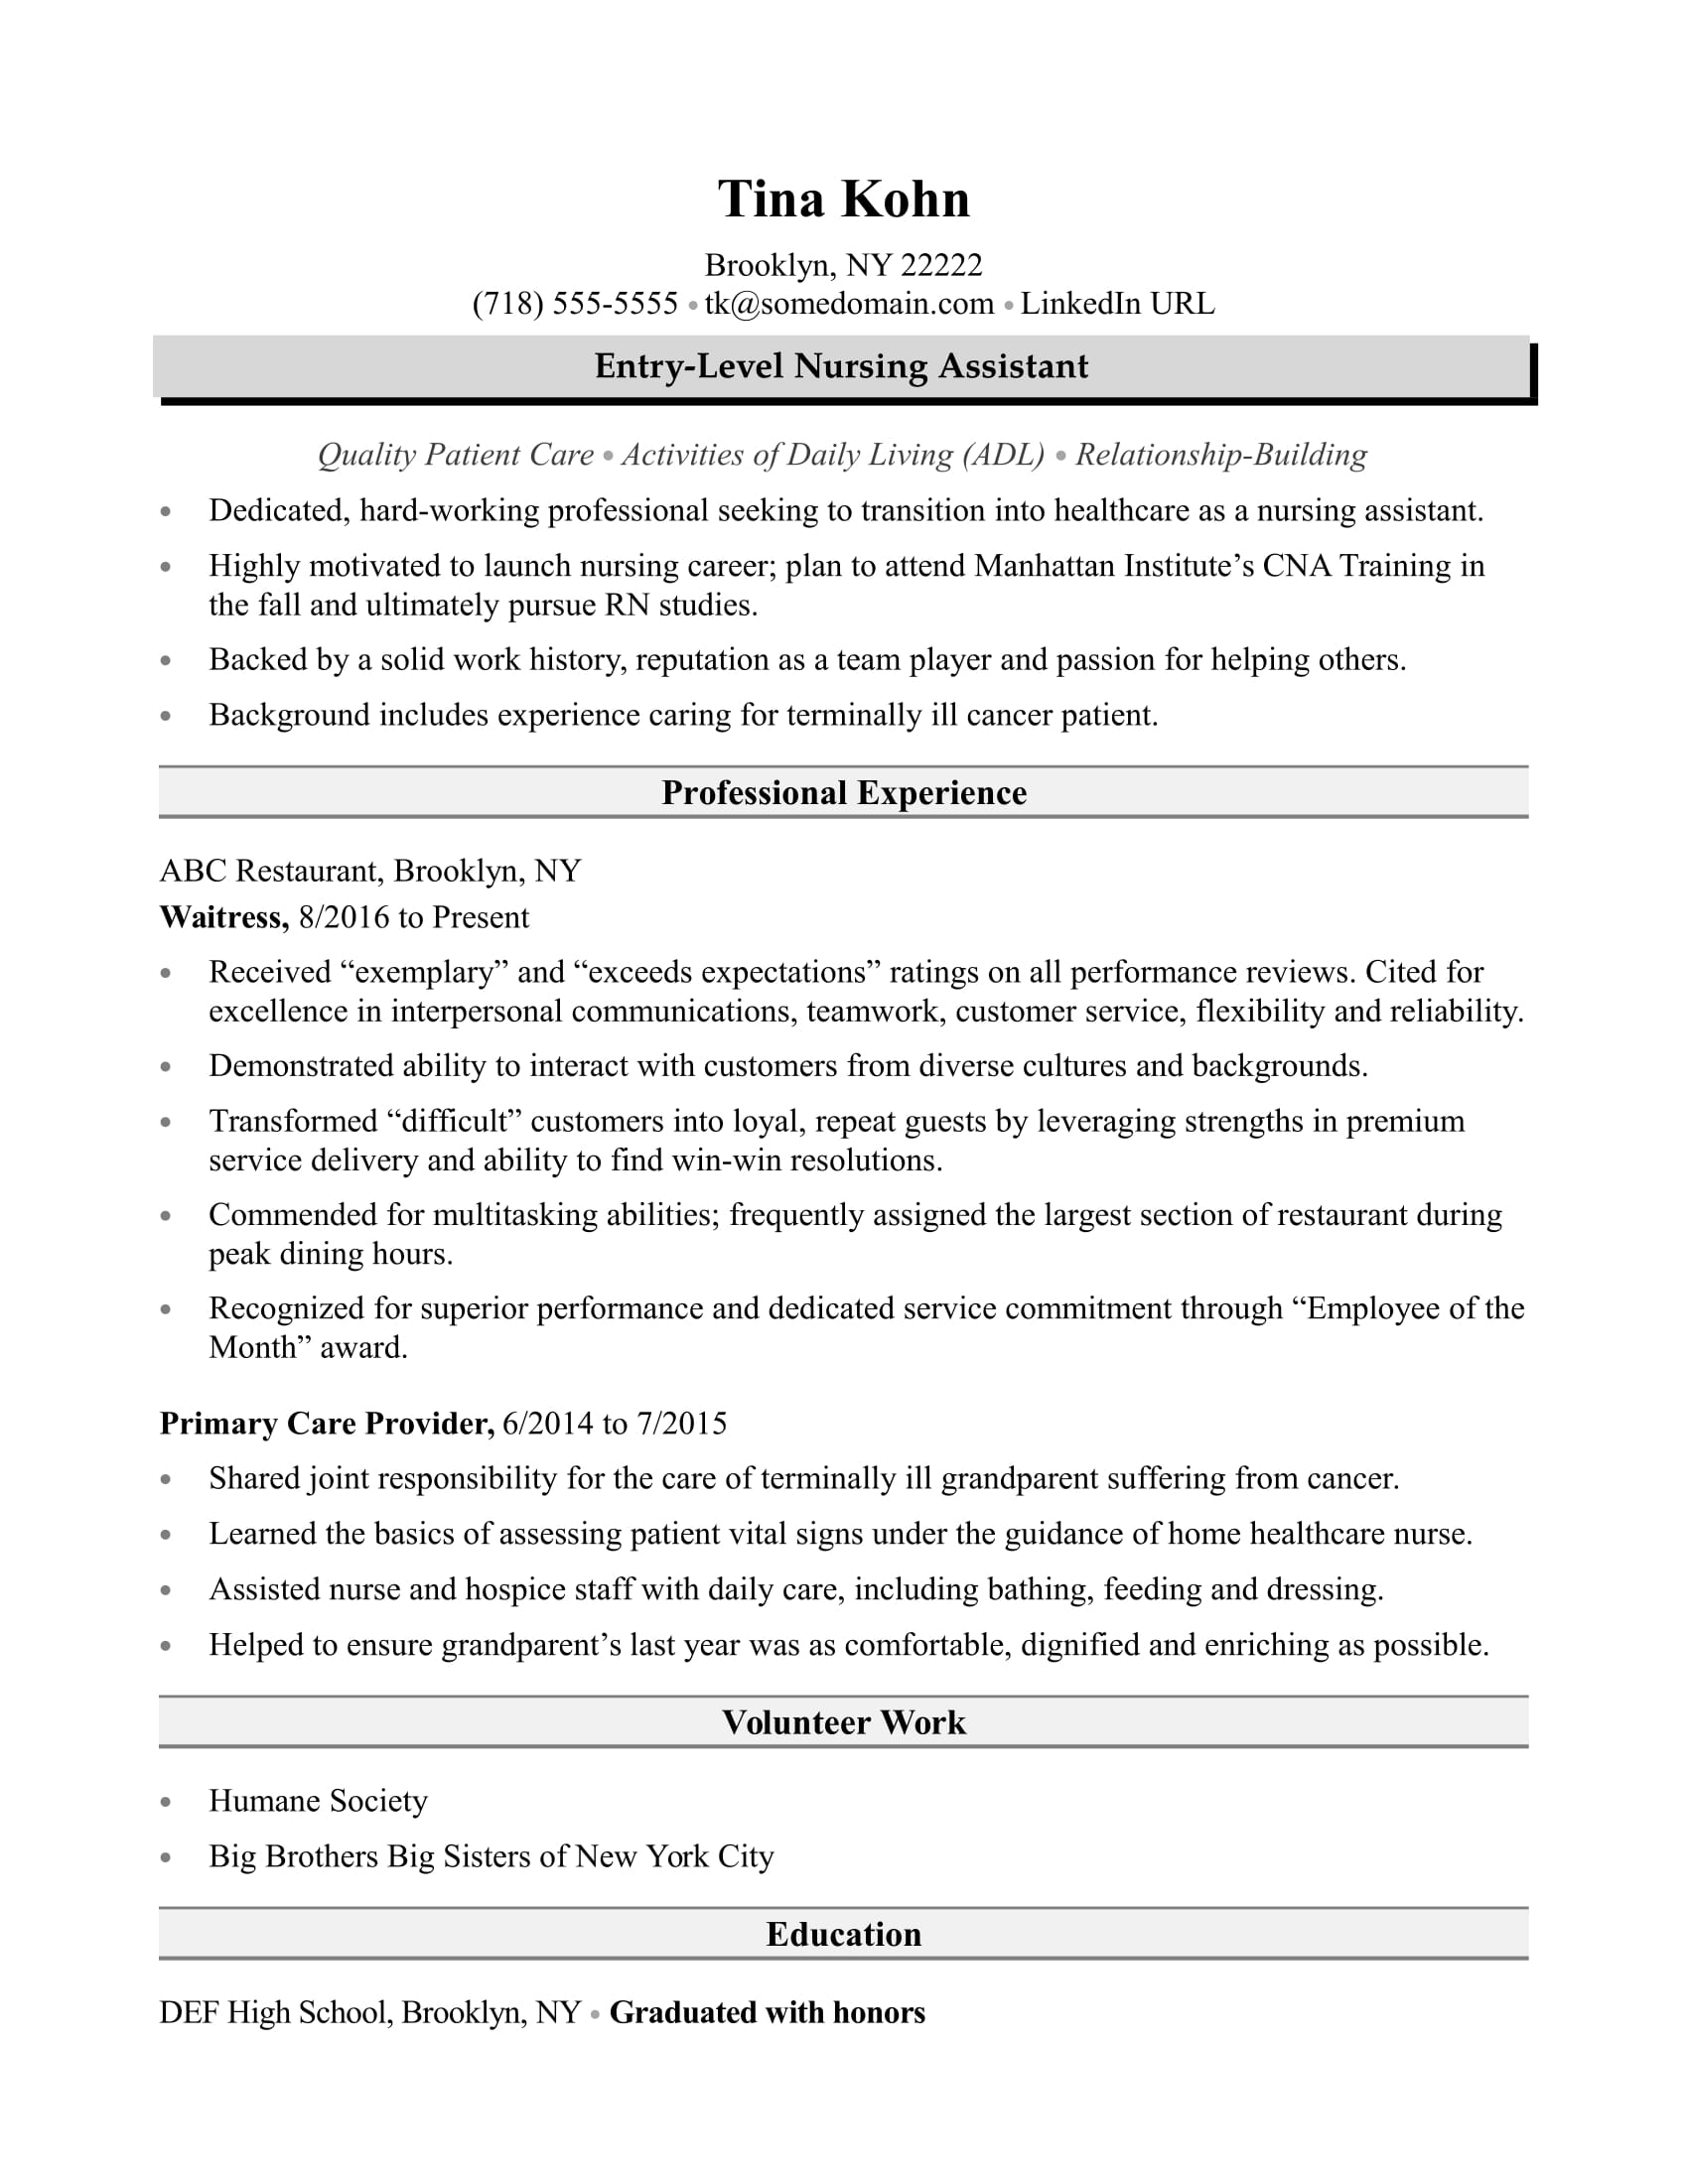 Nursing Assistant Resume Sample | Monster.com